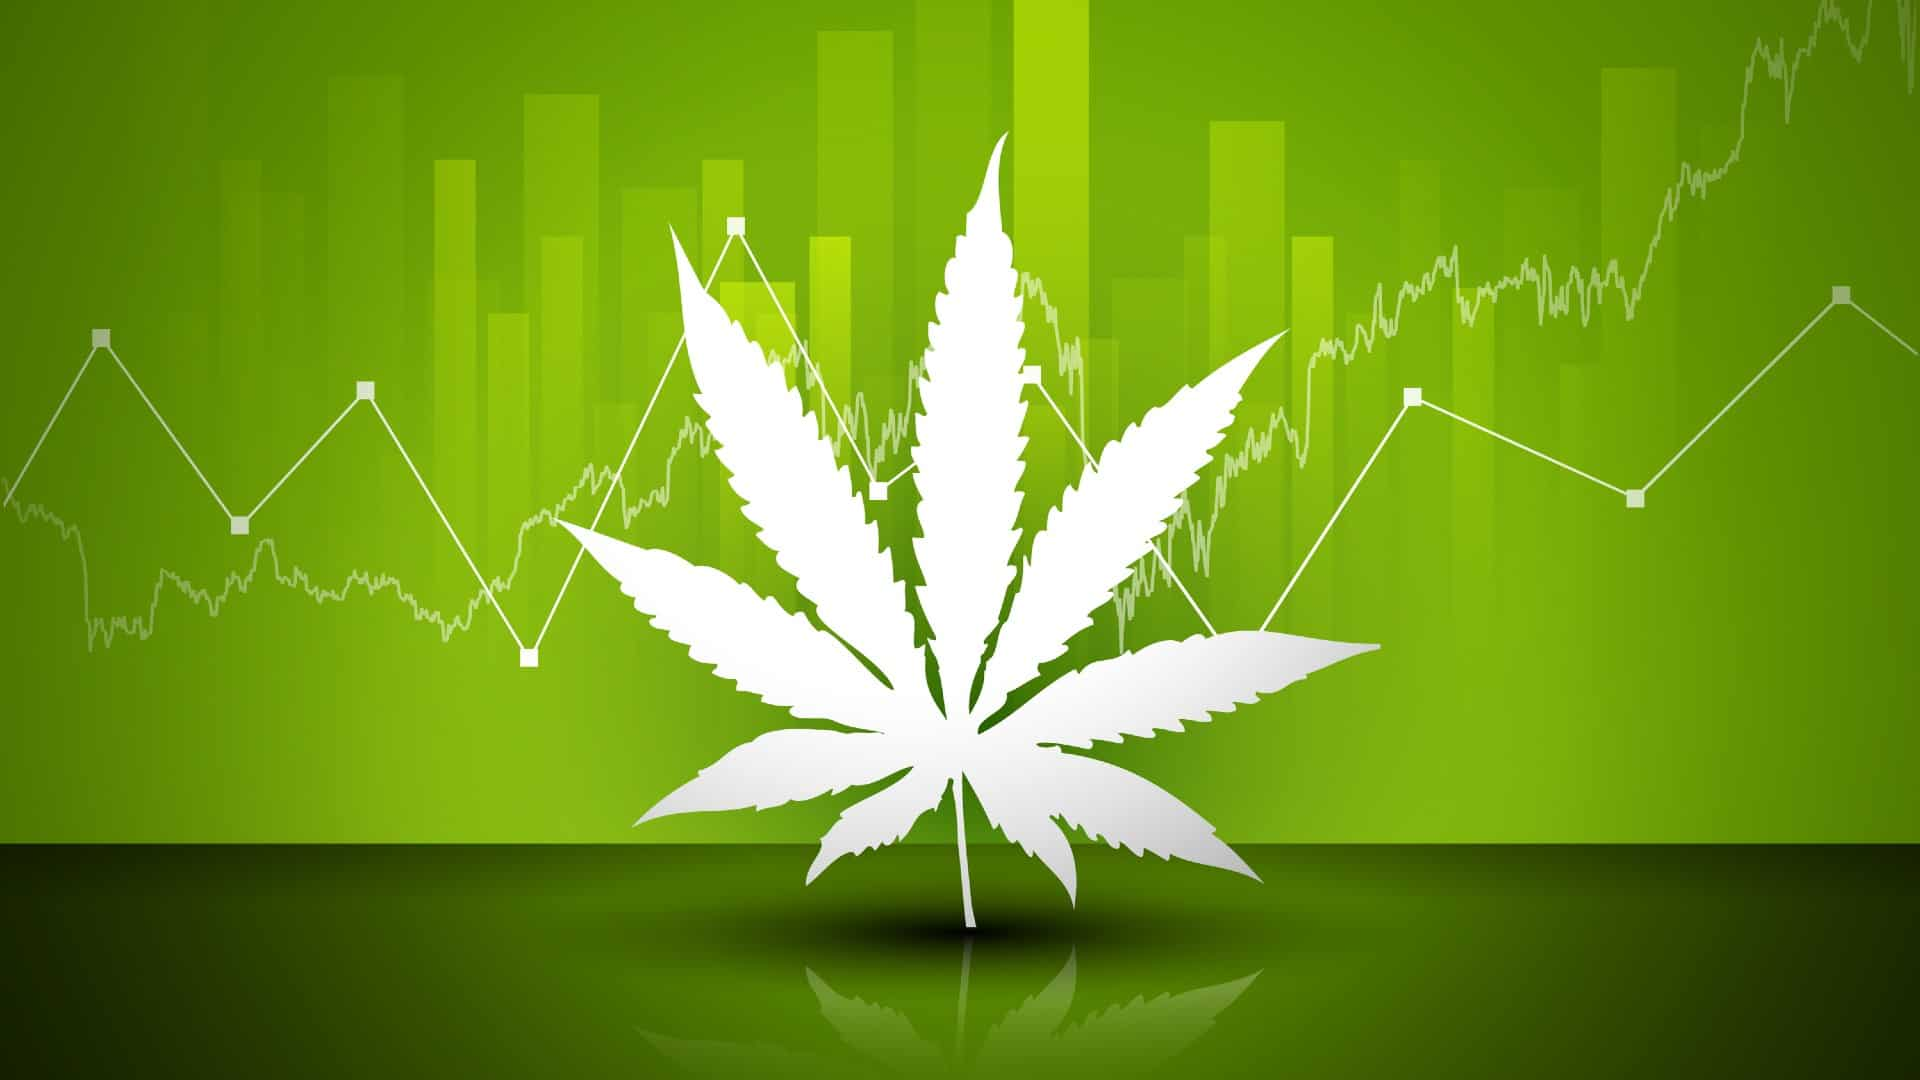 A white cannabis leaf set against a green background with a graph going up, indicating a rising share price for ASX cannabis shares